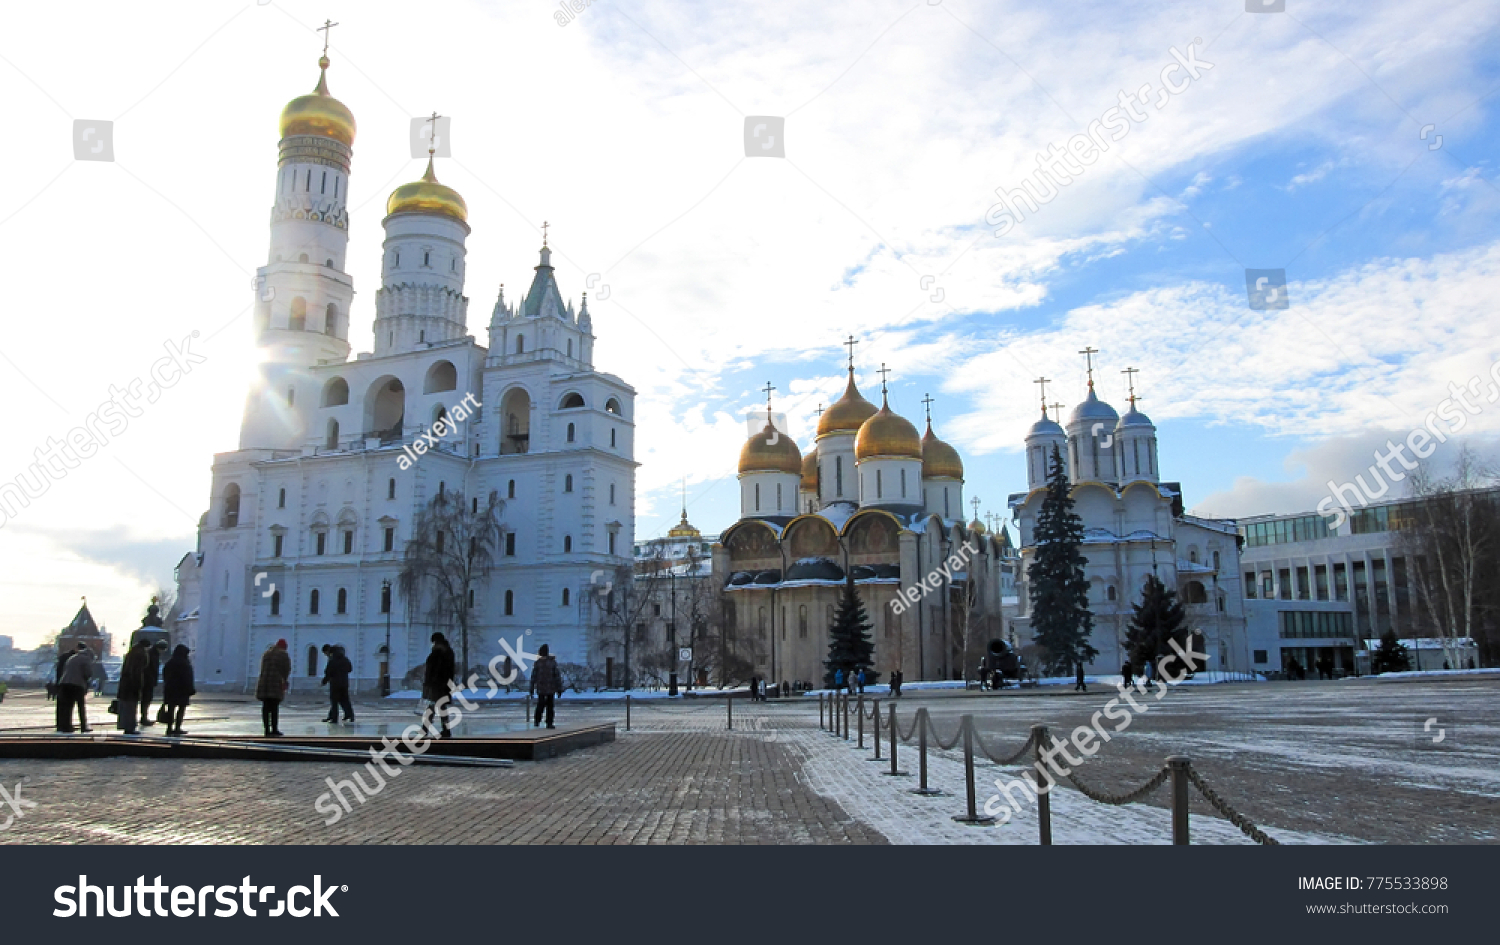 The Moscow Kremlin architectural ensemble: description, history and interesting facts 46